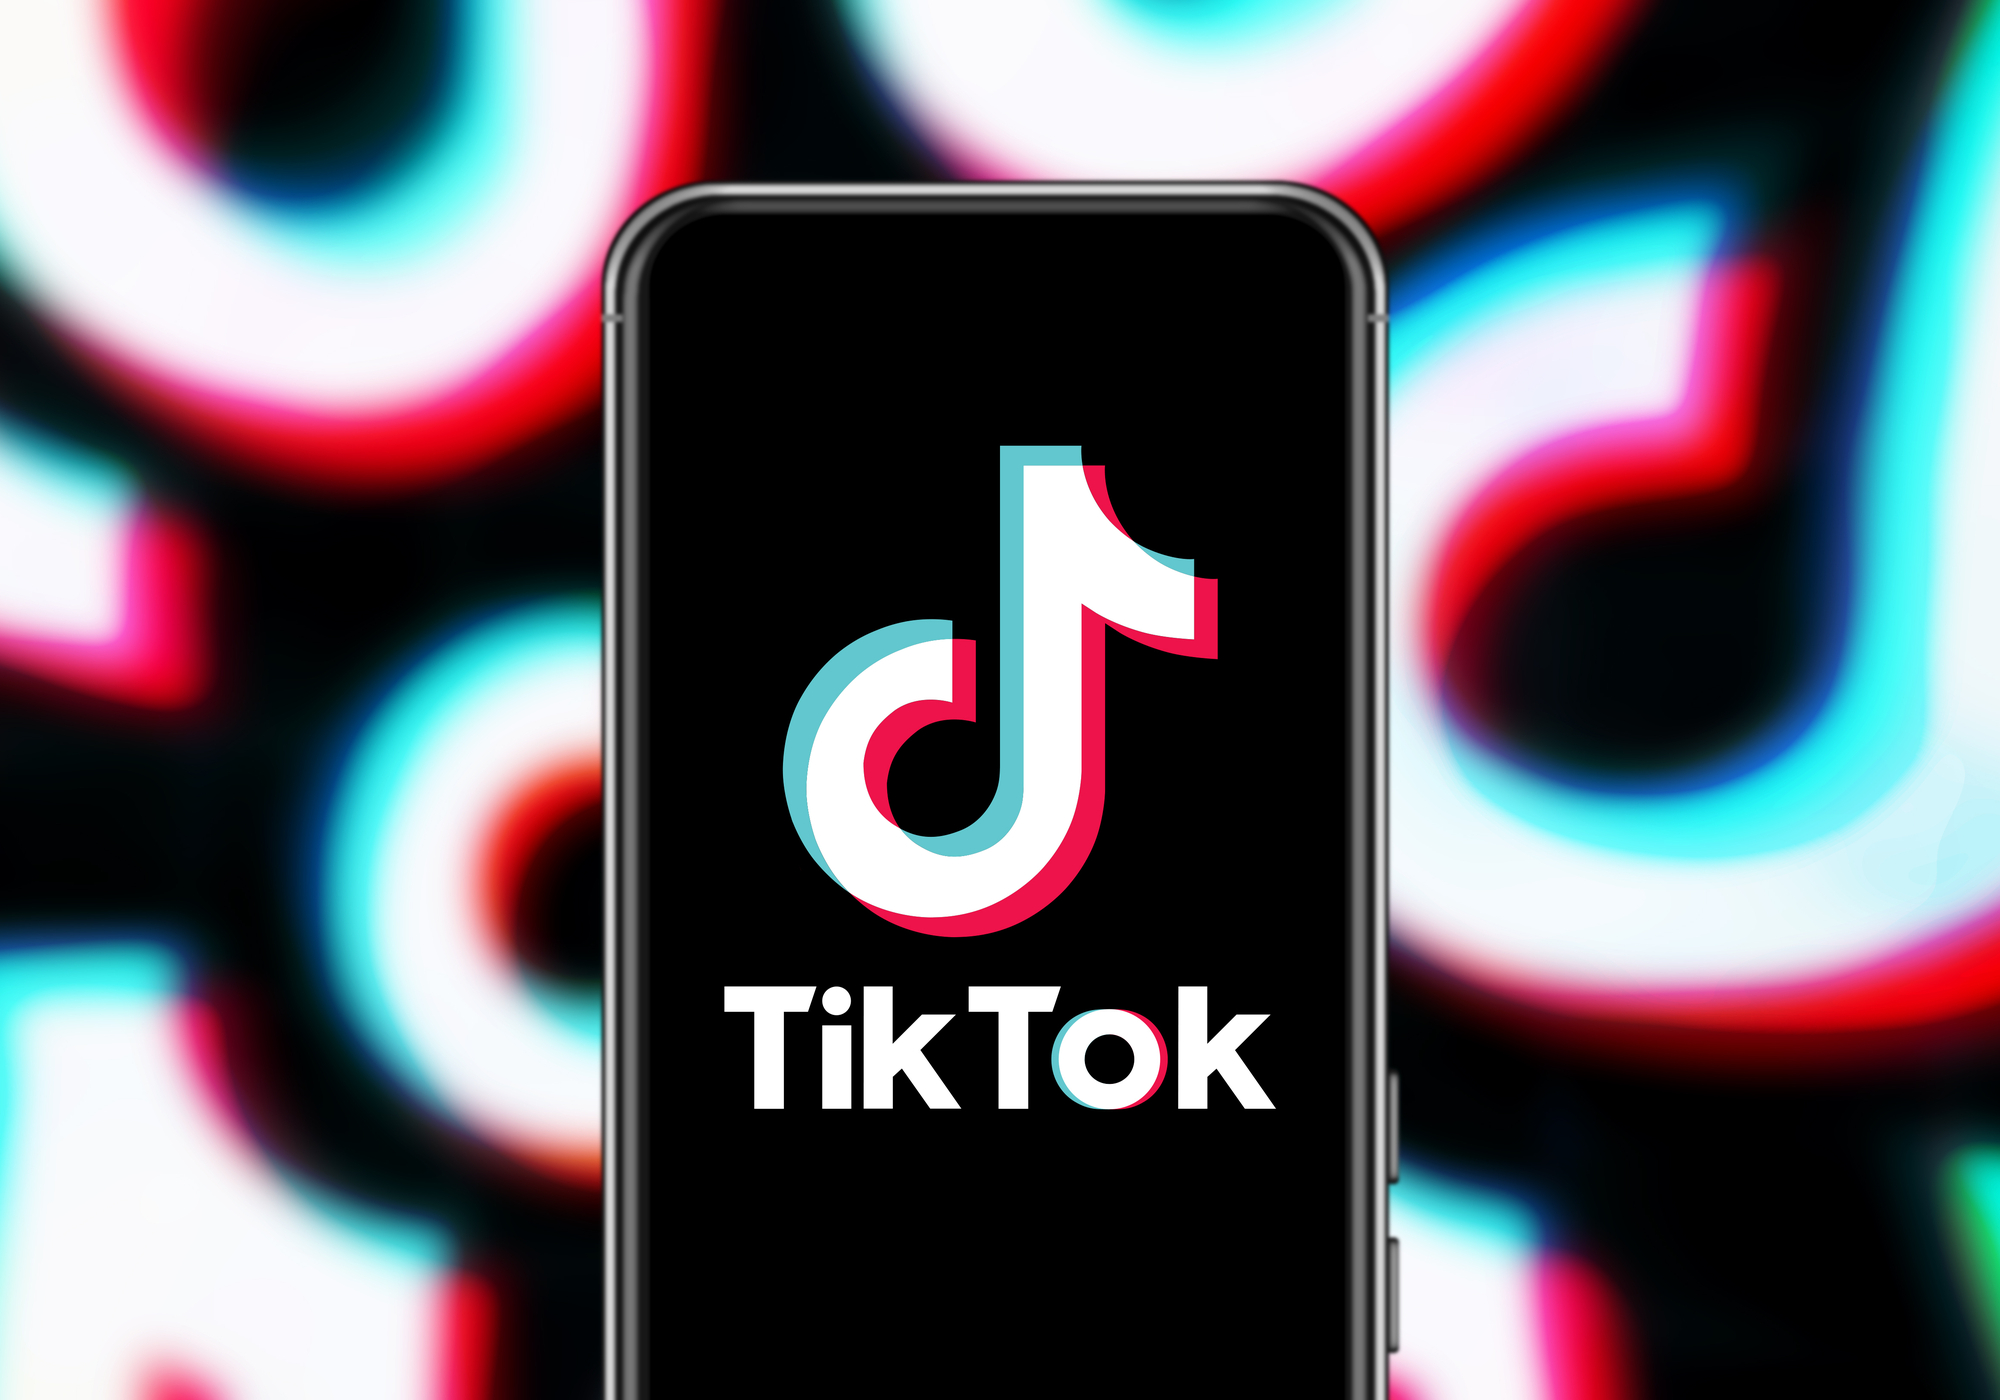 Tech Report Weekly: TikTok braces for US clampdown, Uber posts earnings, Black Hat USA